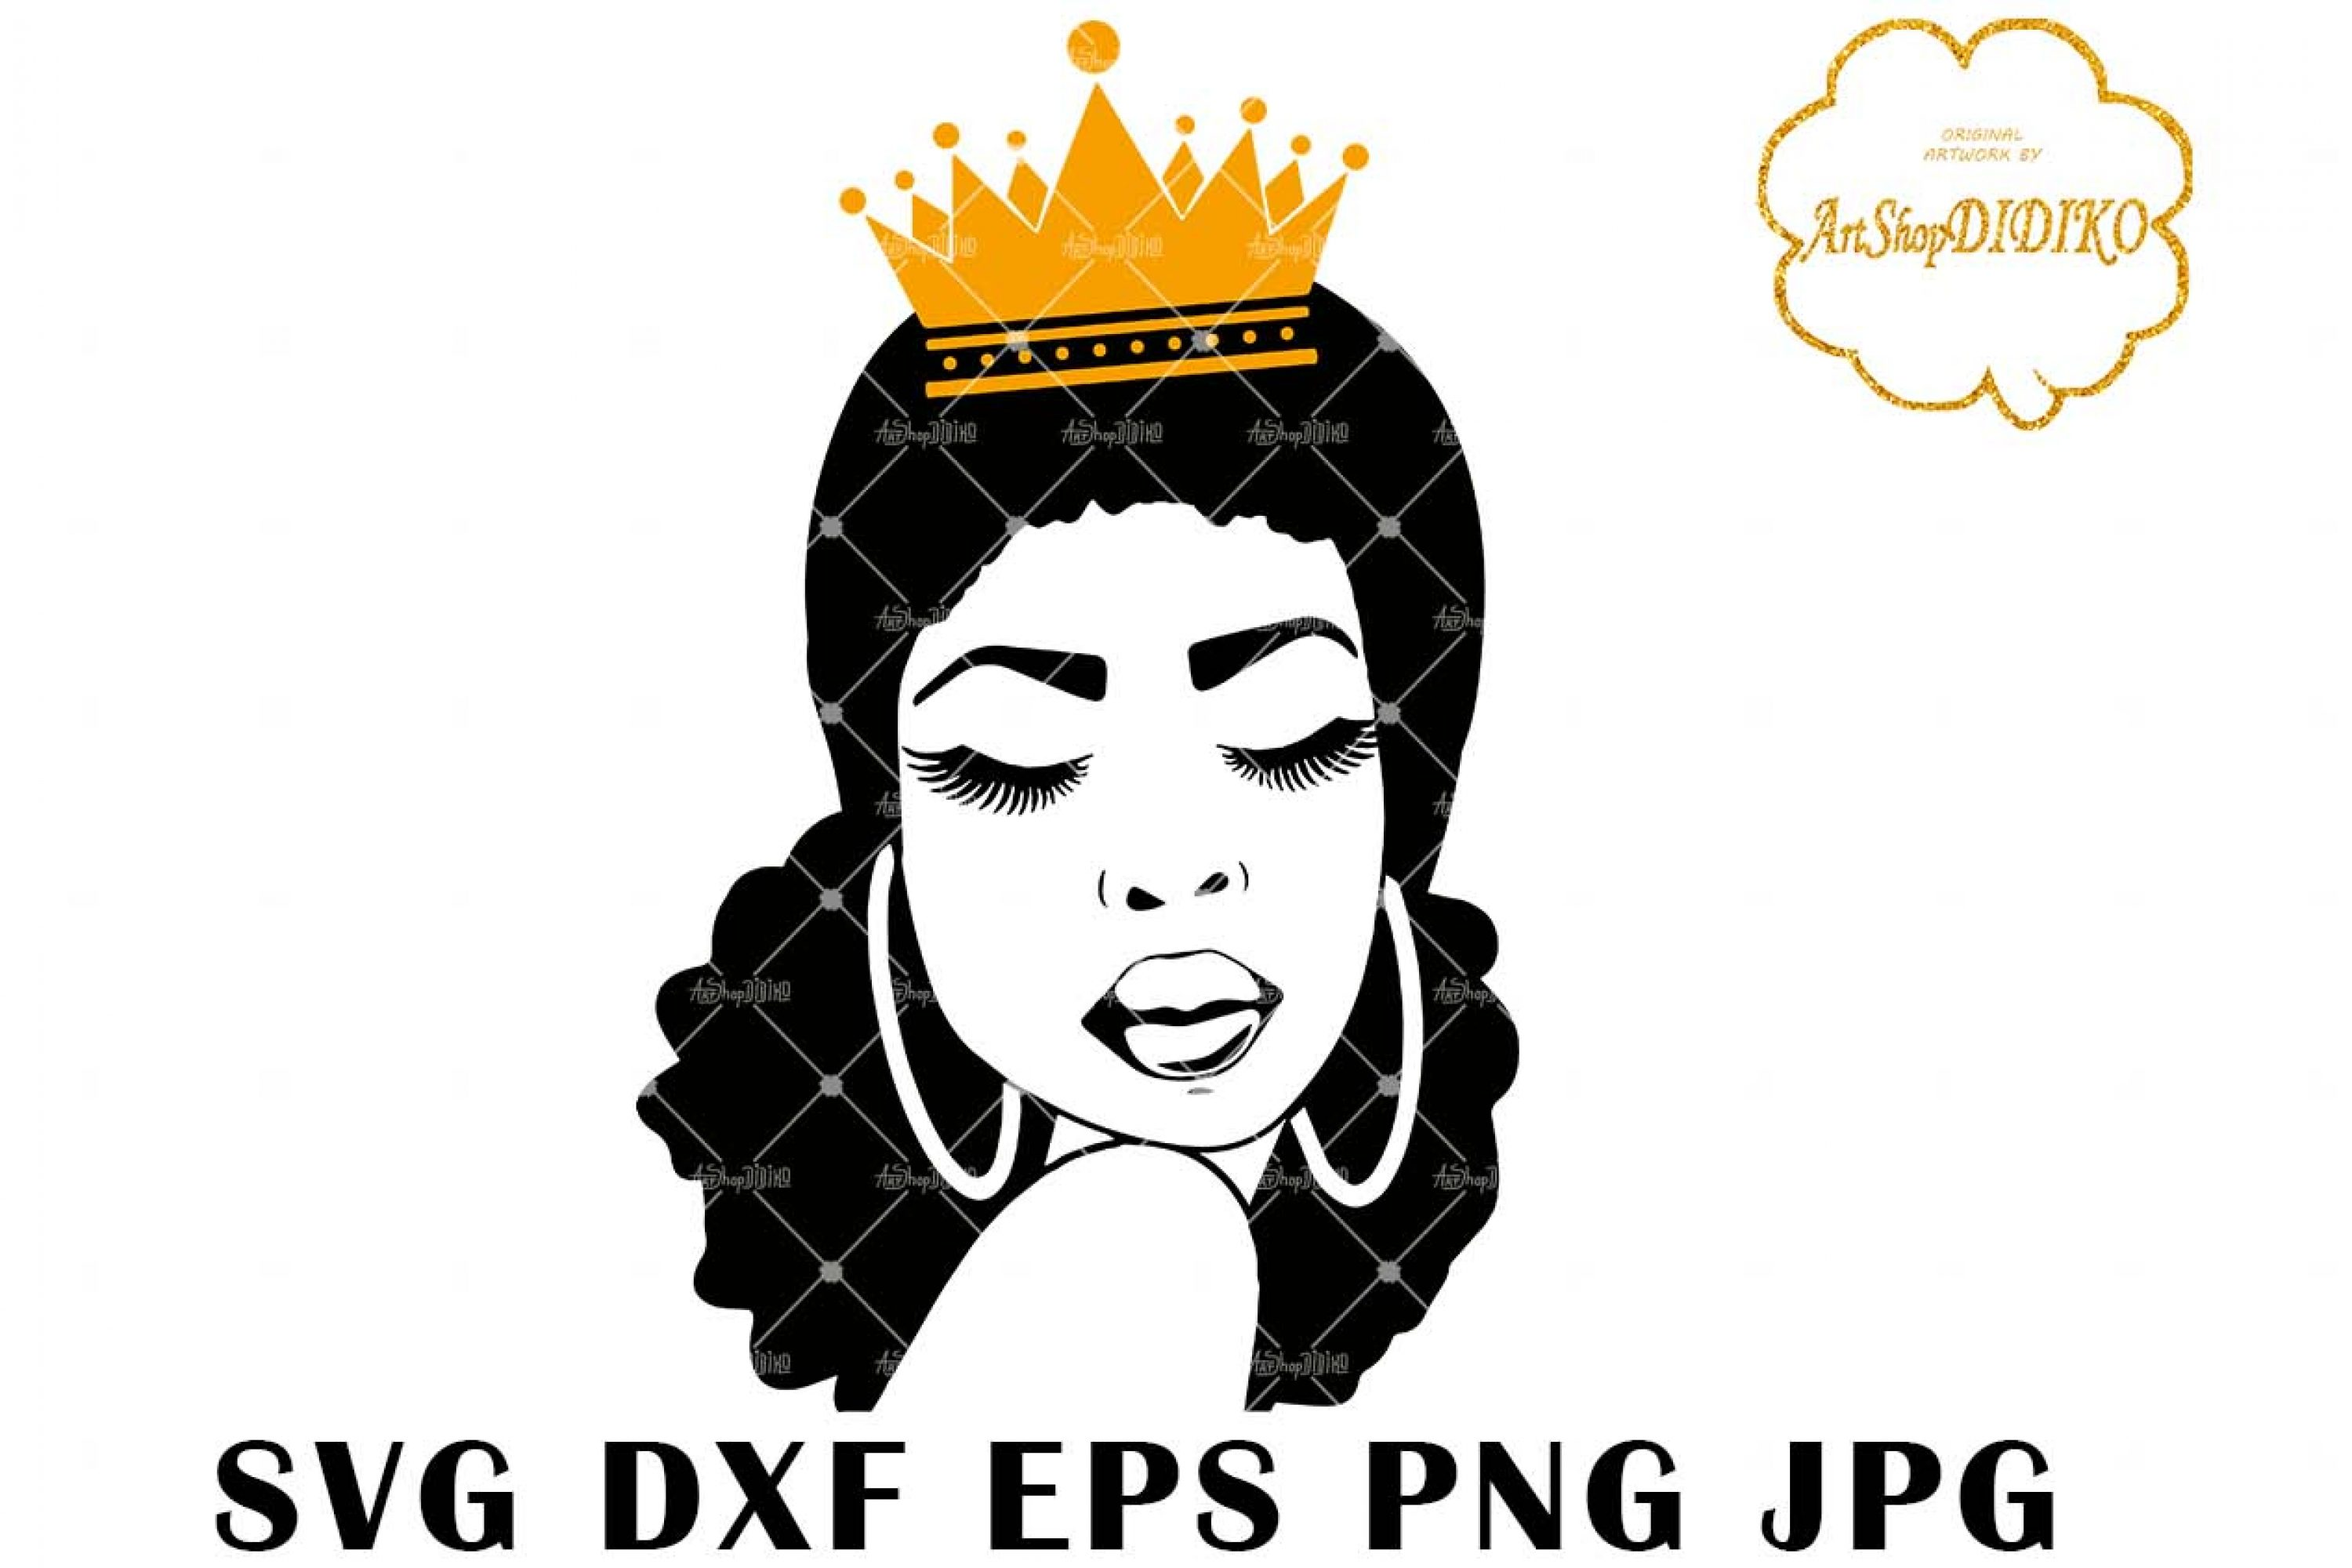 Afro Queen SVG, Afro Woman Silhouette SVG, African American Woman SVG, Low Puff Hair, DXF, EPS, PNG, JPG, Silhouette Files, Cricut Cut Files